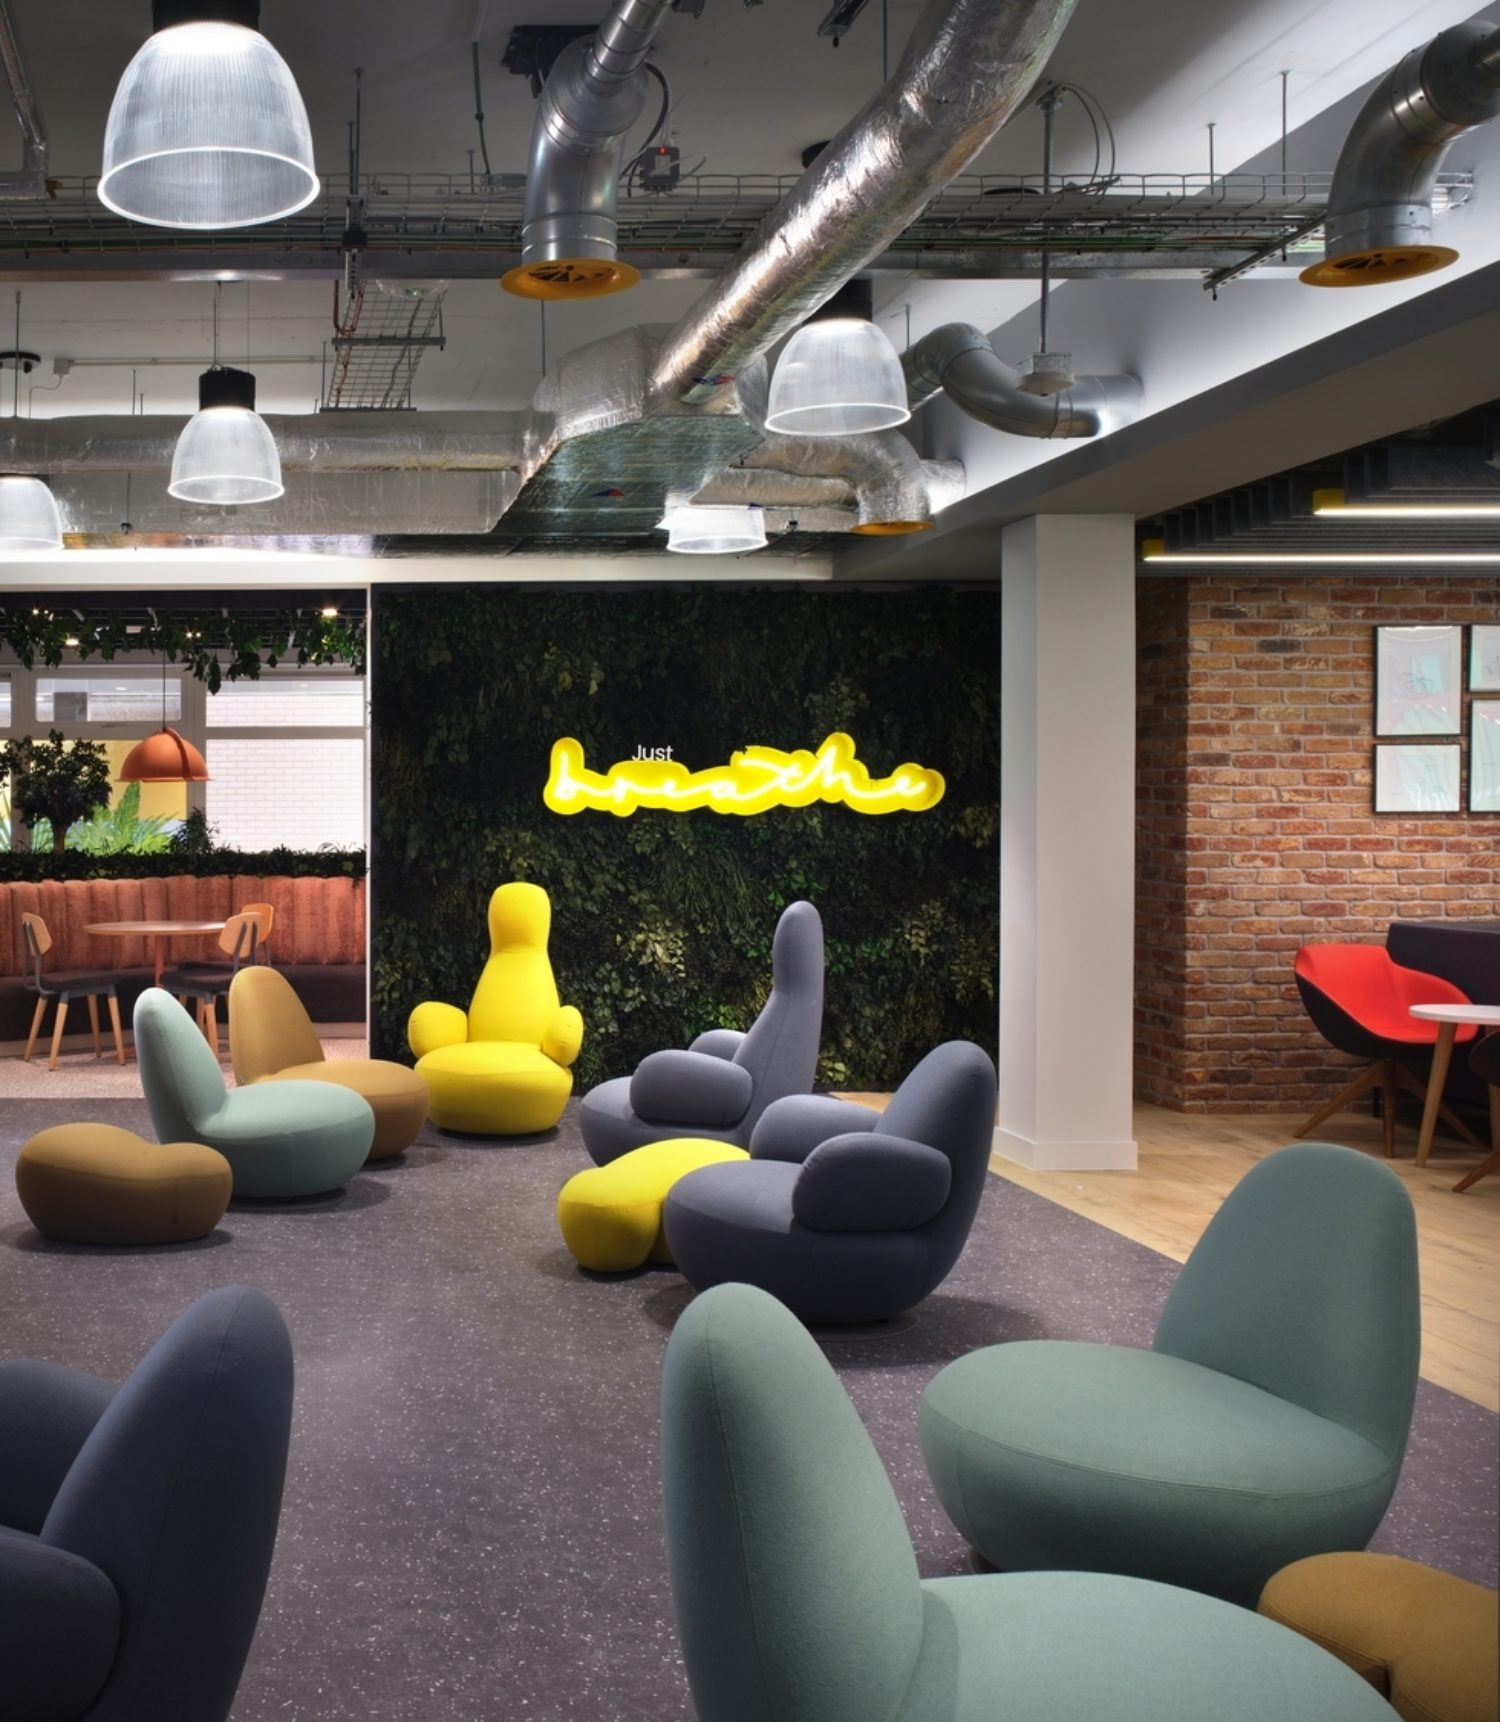 Contemporary office interior design with colourful soft furnishings